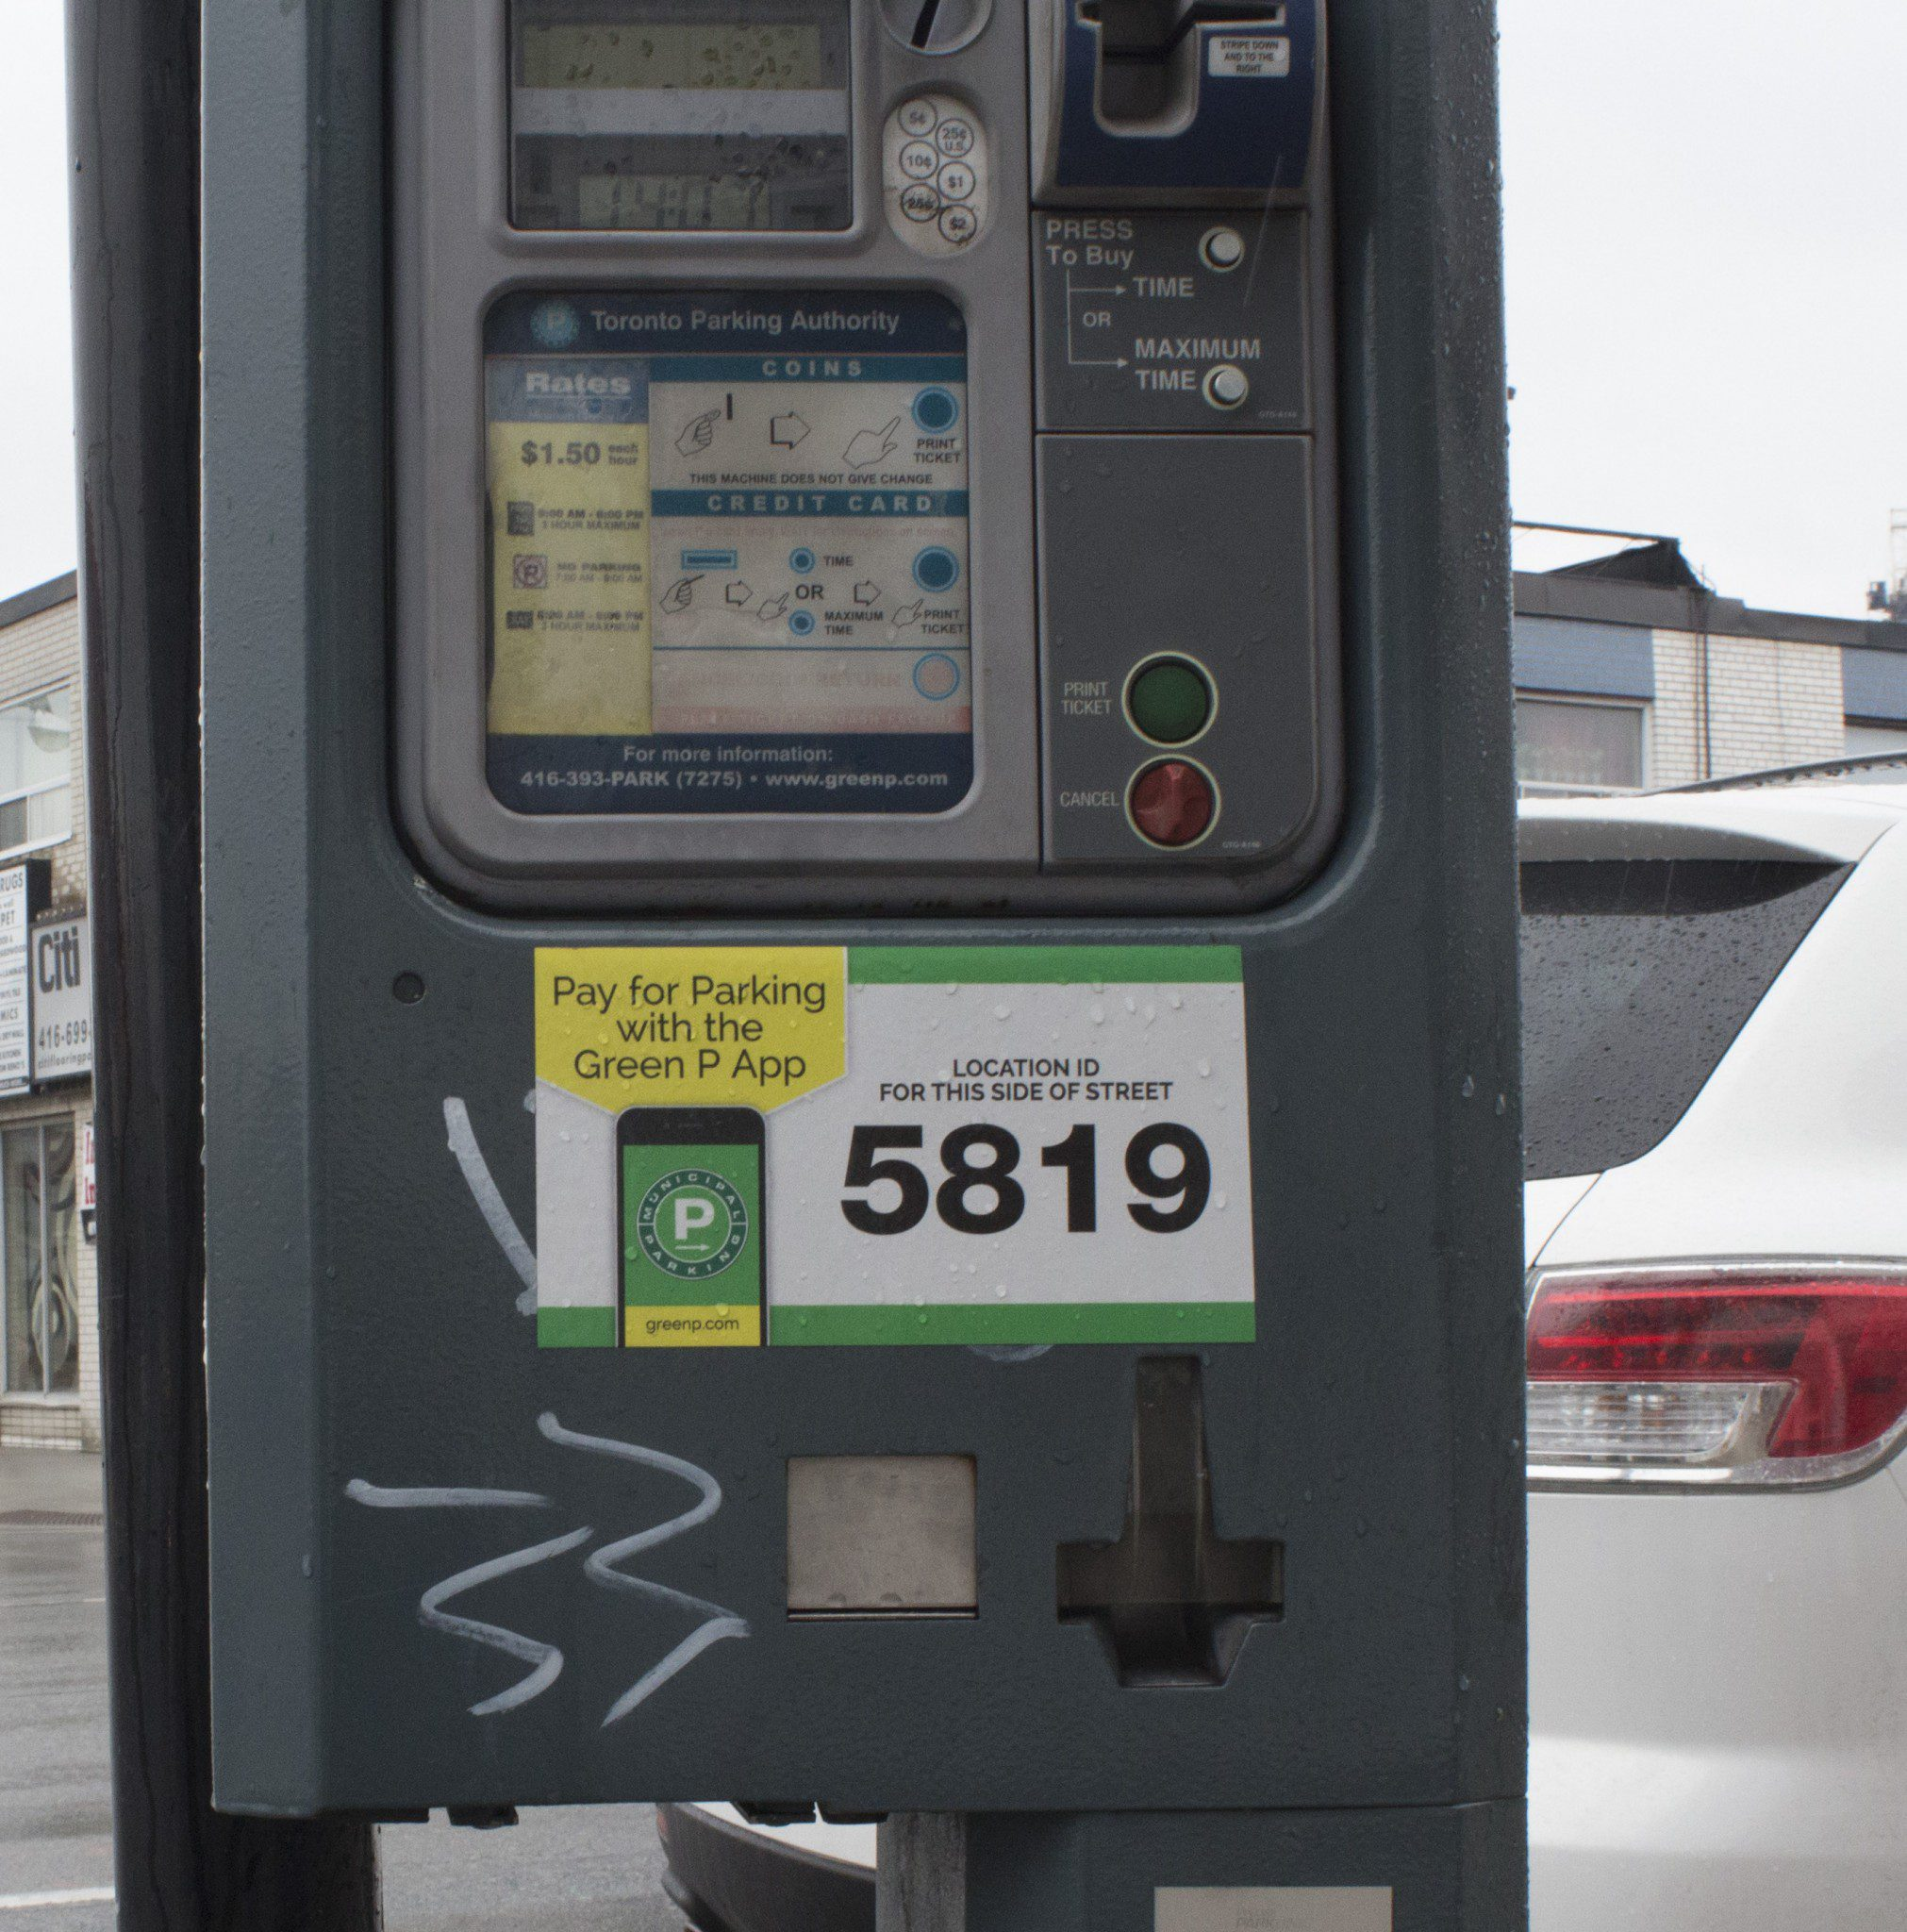 sticker covers graffiti on parking meter